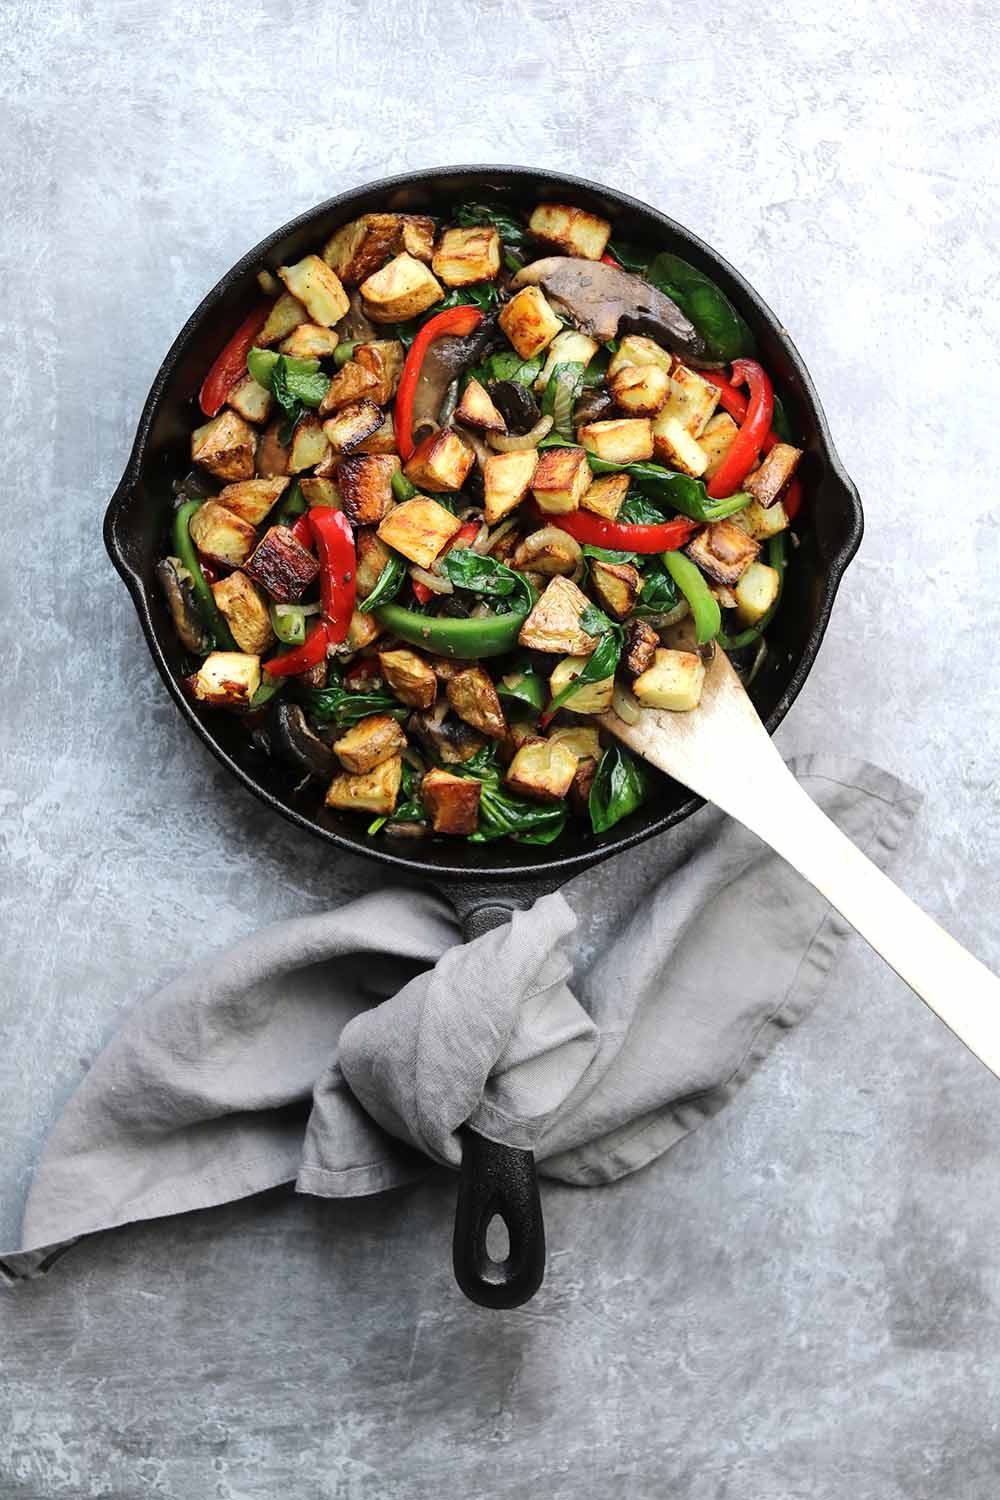 skillet with vegetables with potatos